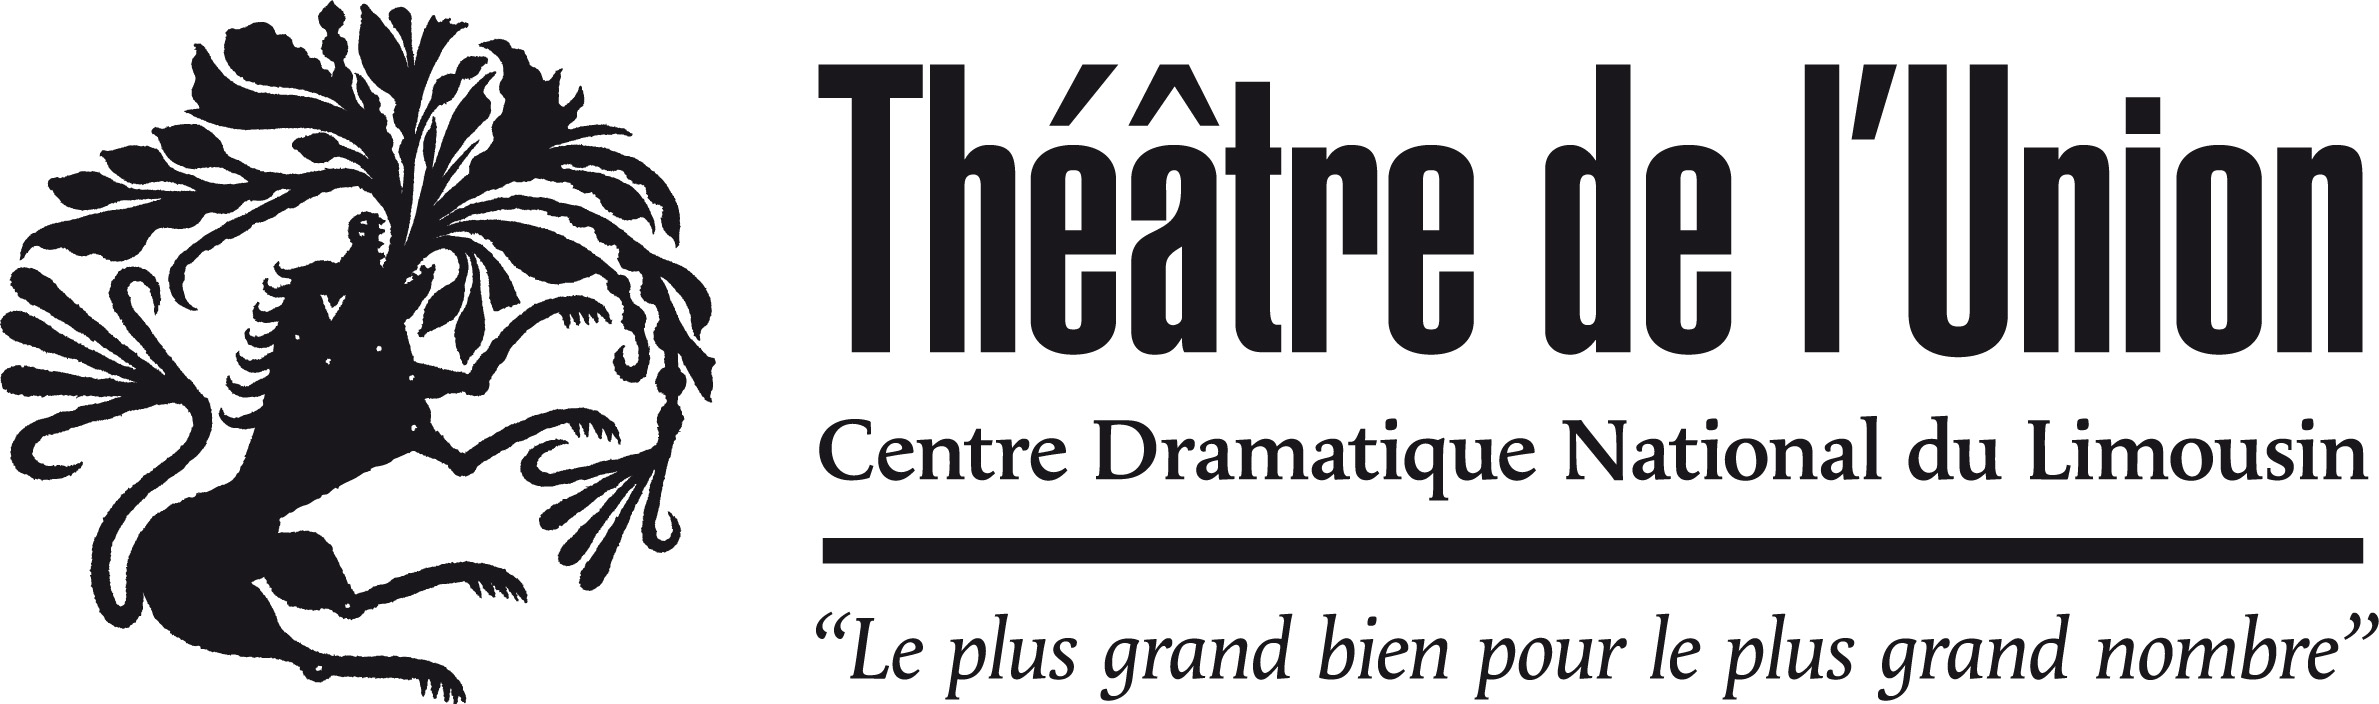 theatre_union_logo.jpg